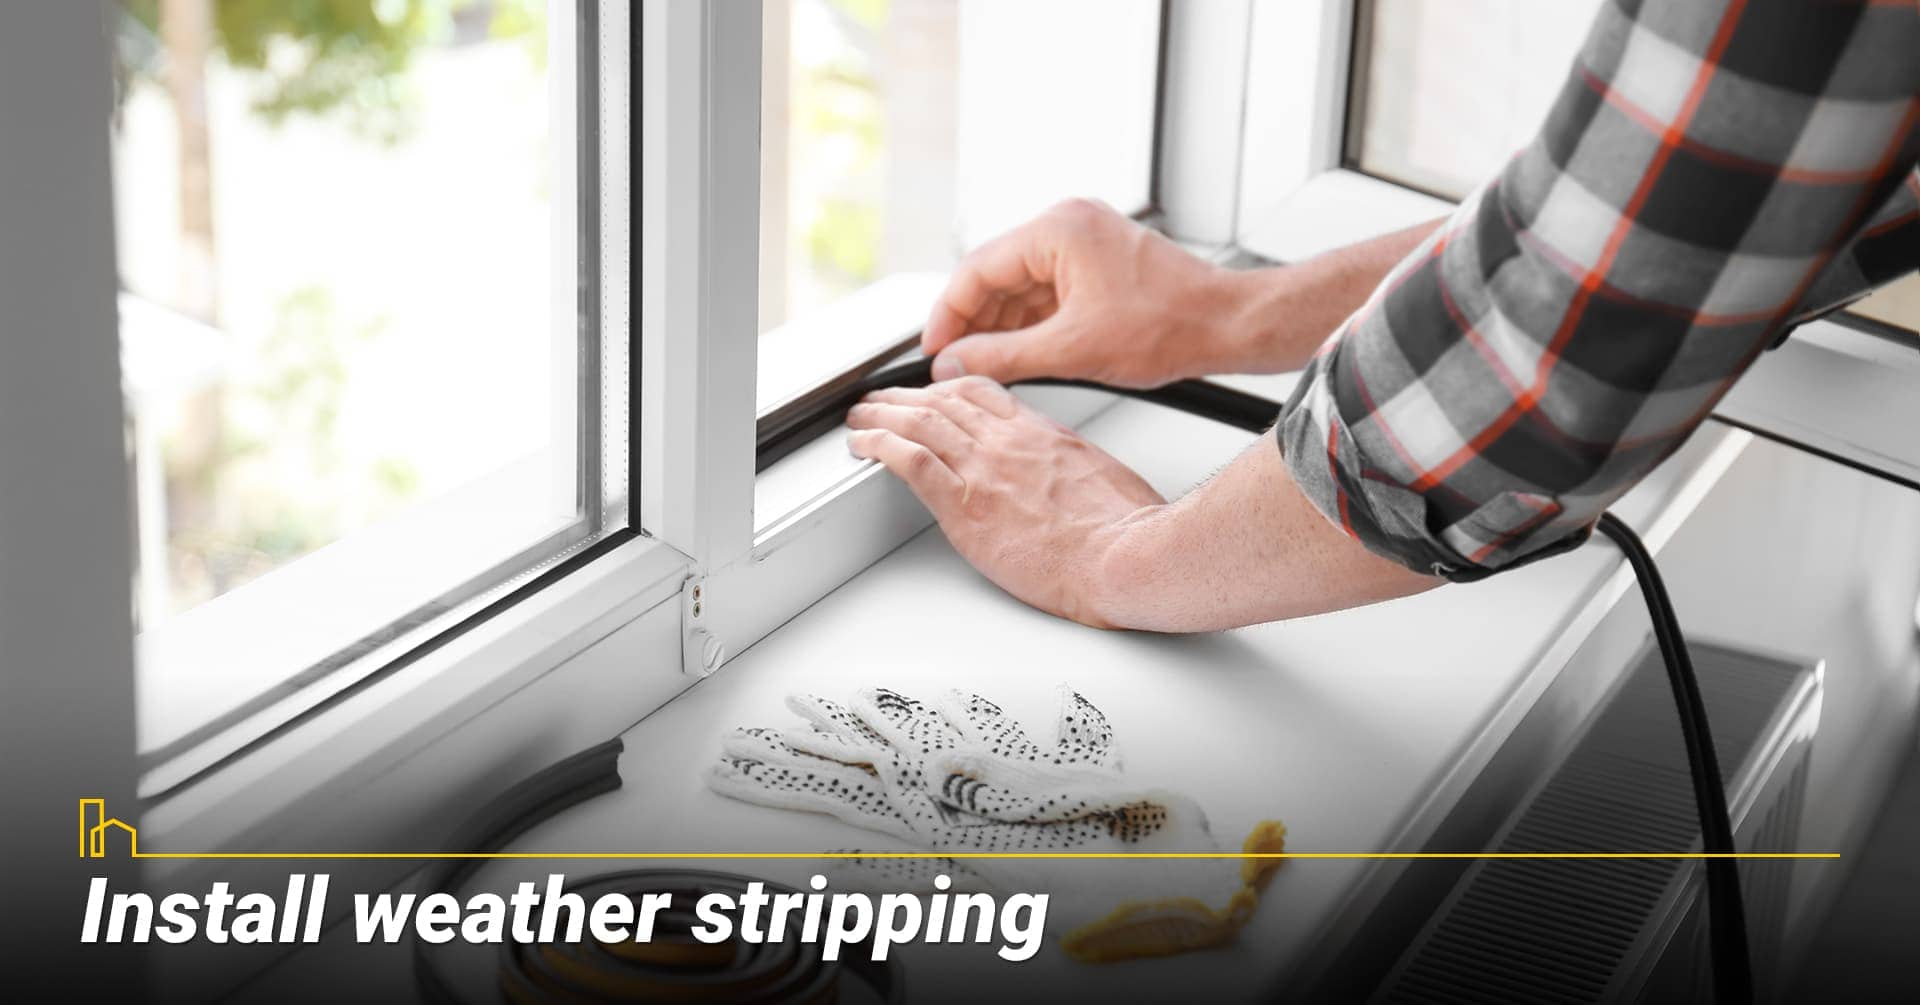 Install weather stripping, use weather strip for bigger gaps